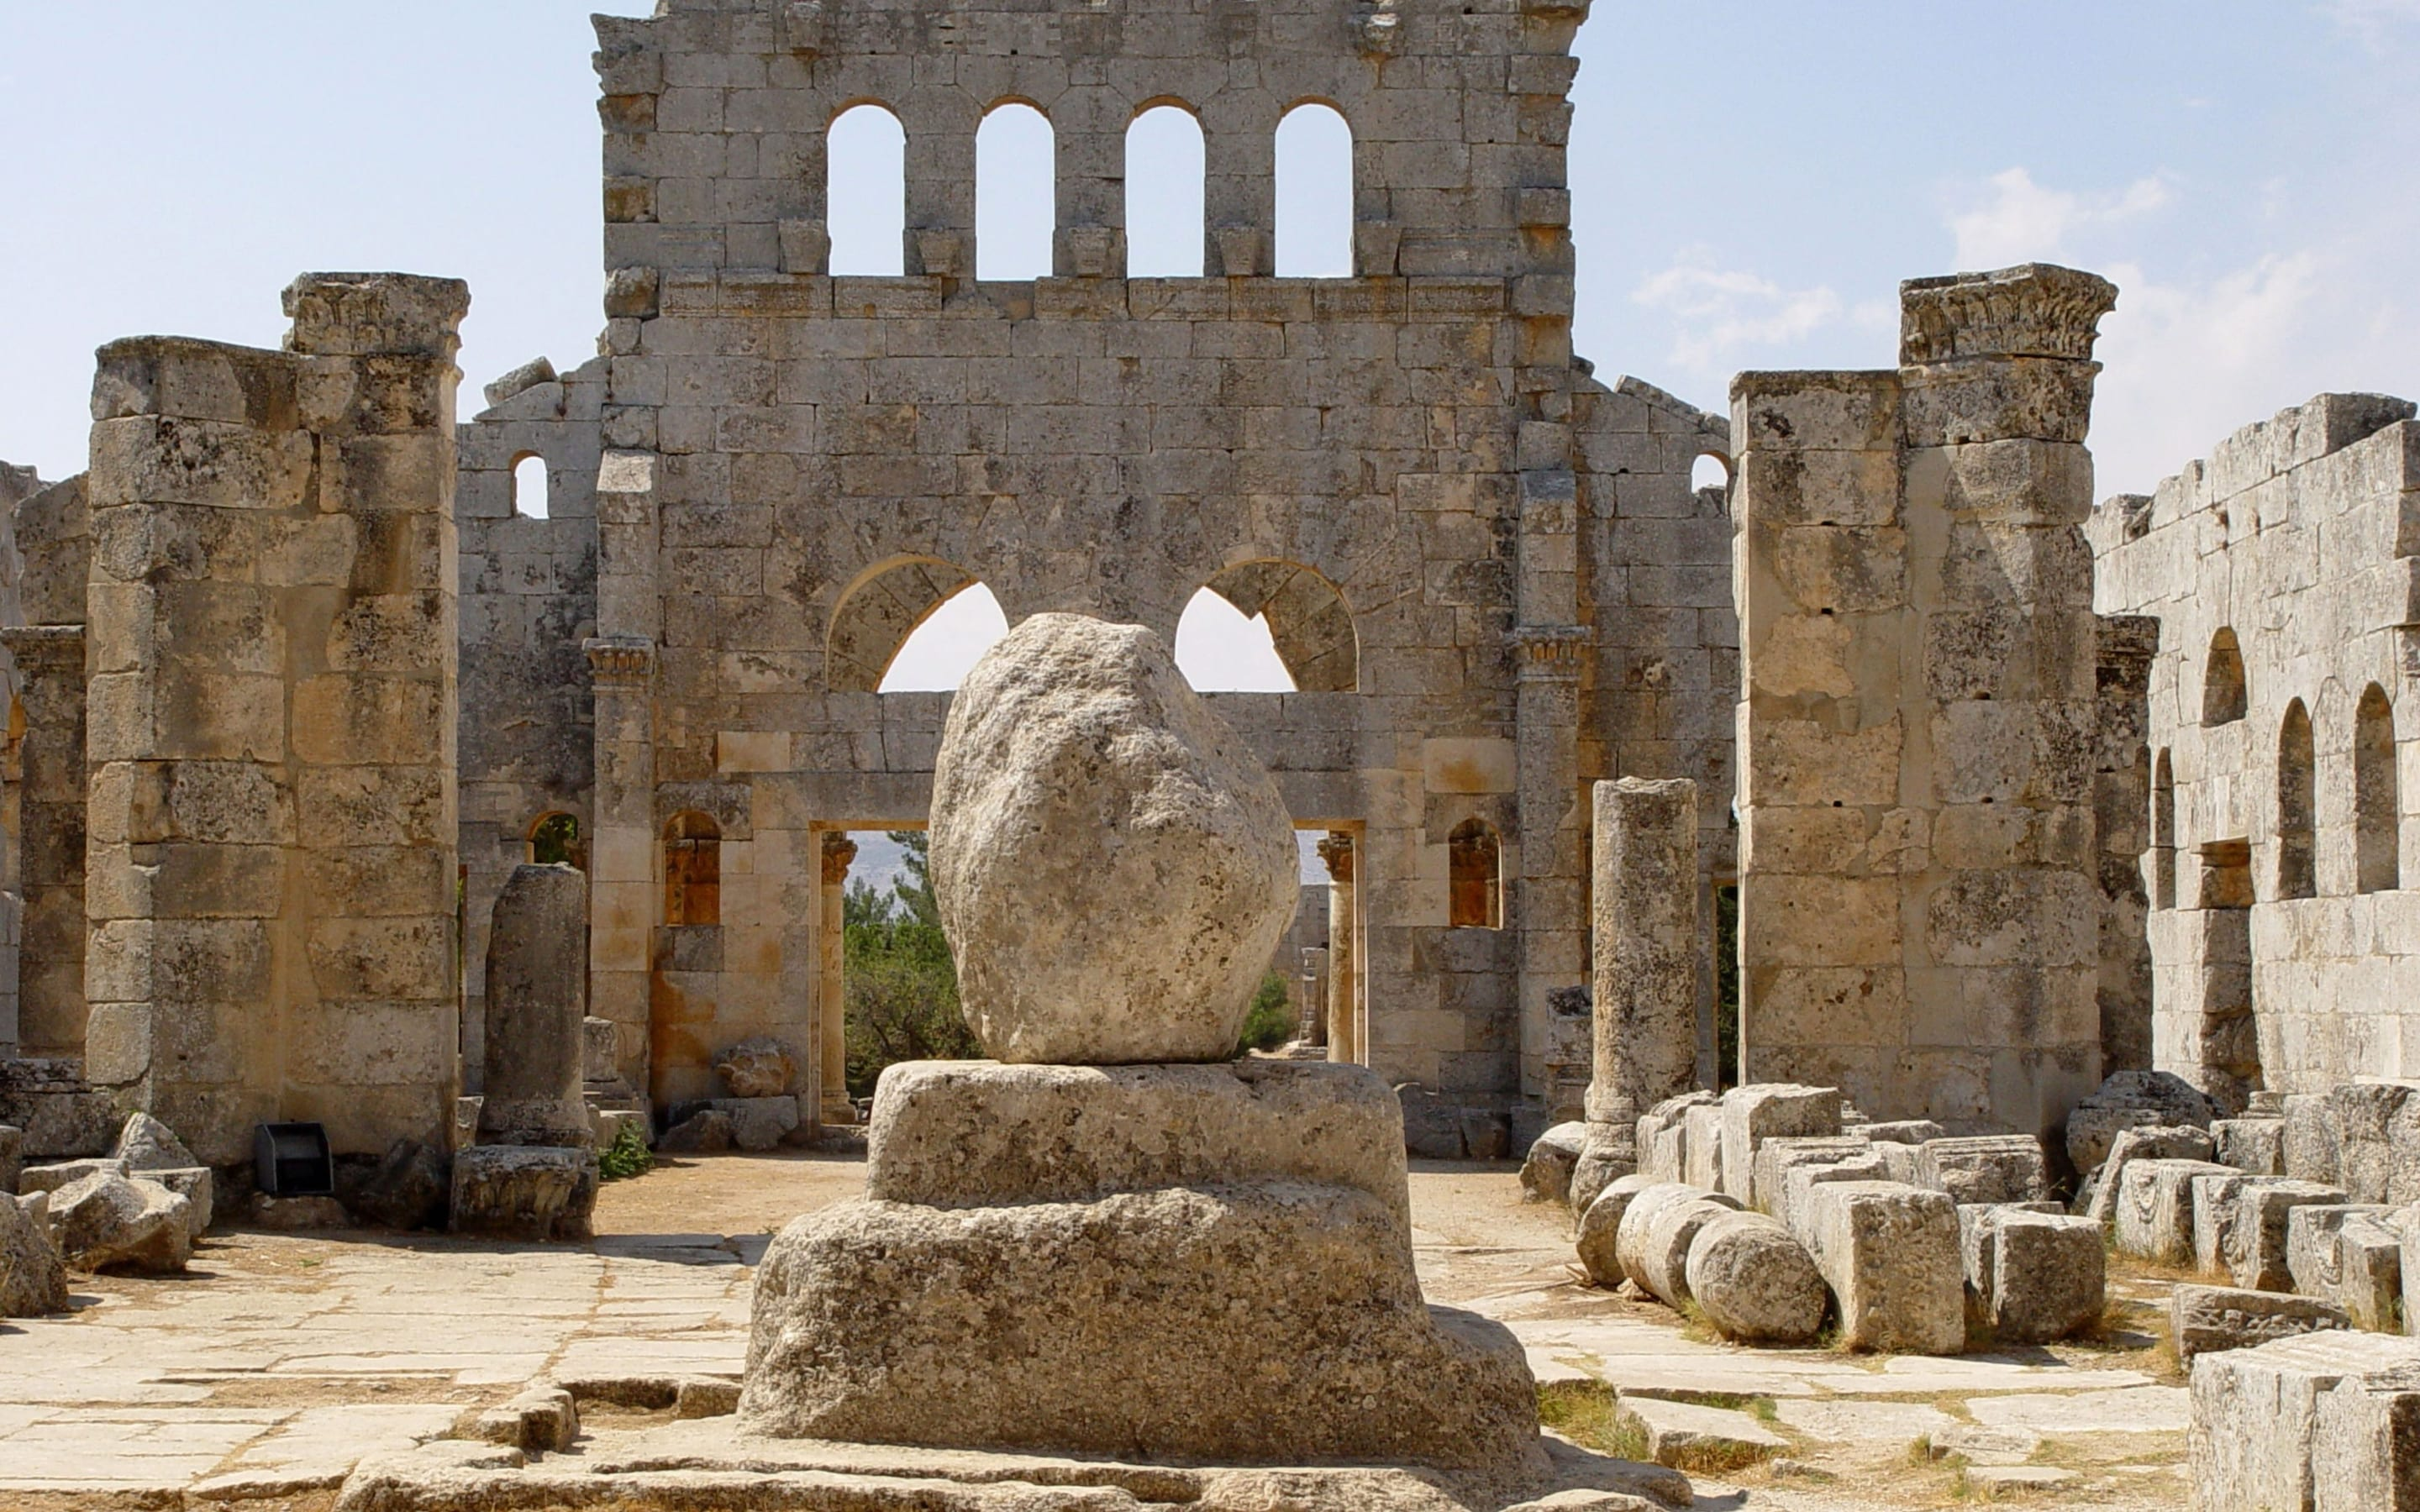 St Simeons Pillar, prior to its demolition by ISIS.